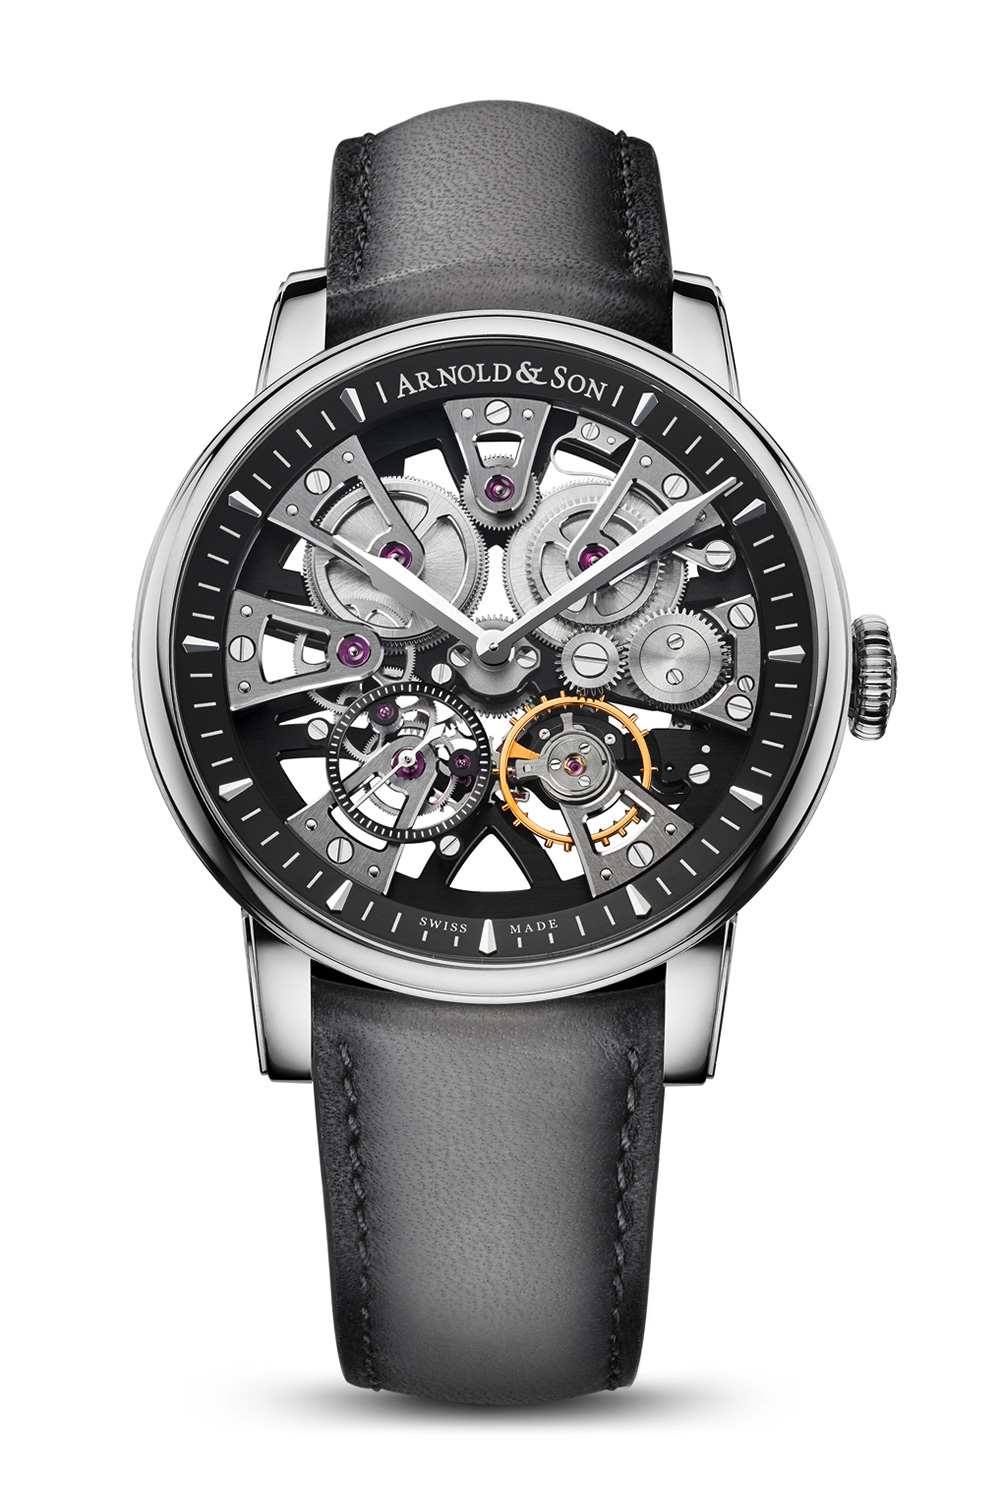 The watch is a time-only piece with incredible architecture